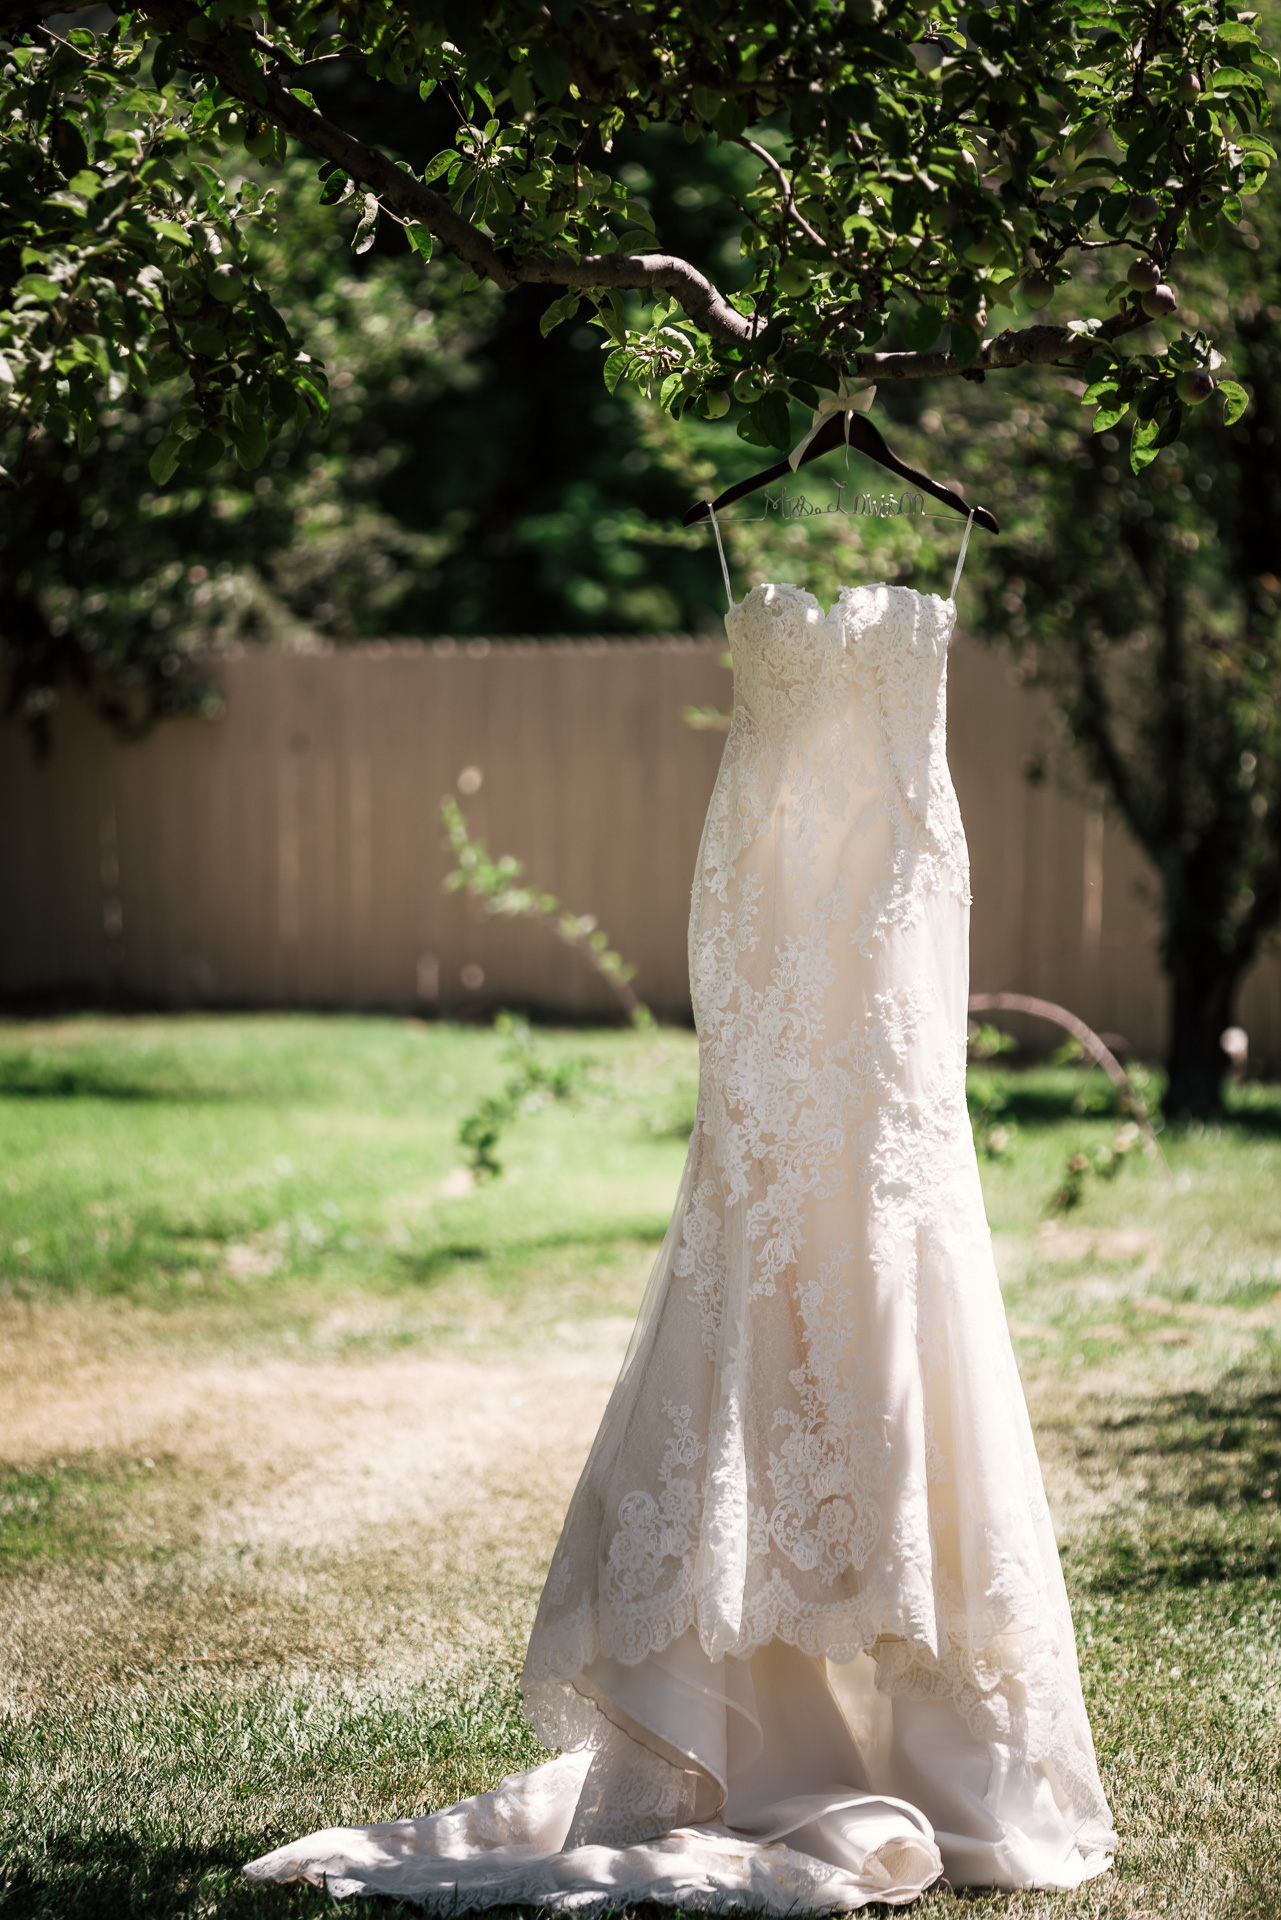 wedding dress hanging outdoors from tree at the secret garden located at the Historic Parish ranch in Oak Glen California